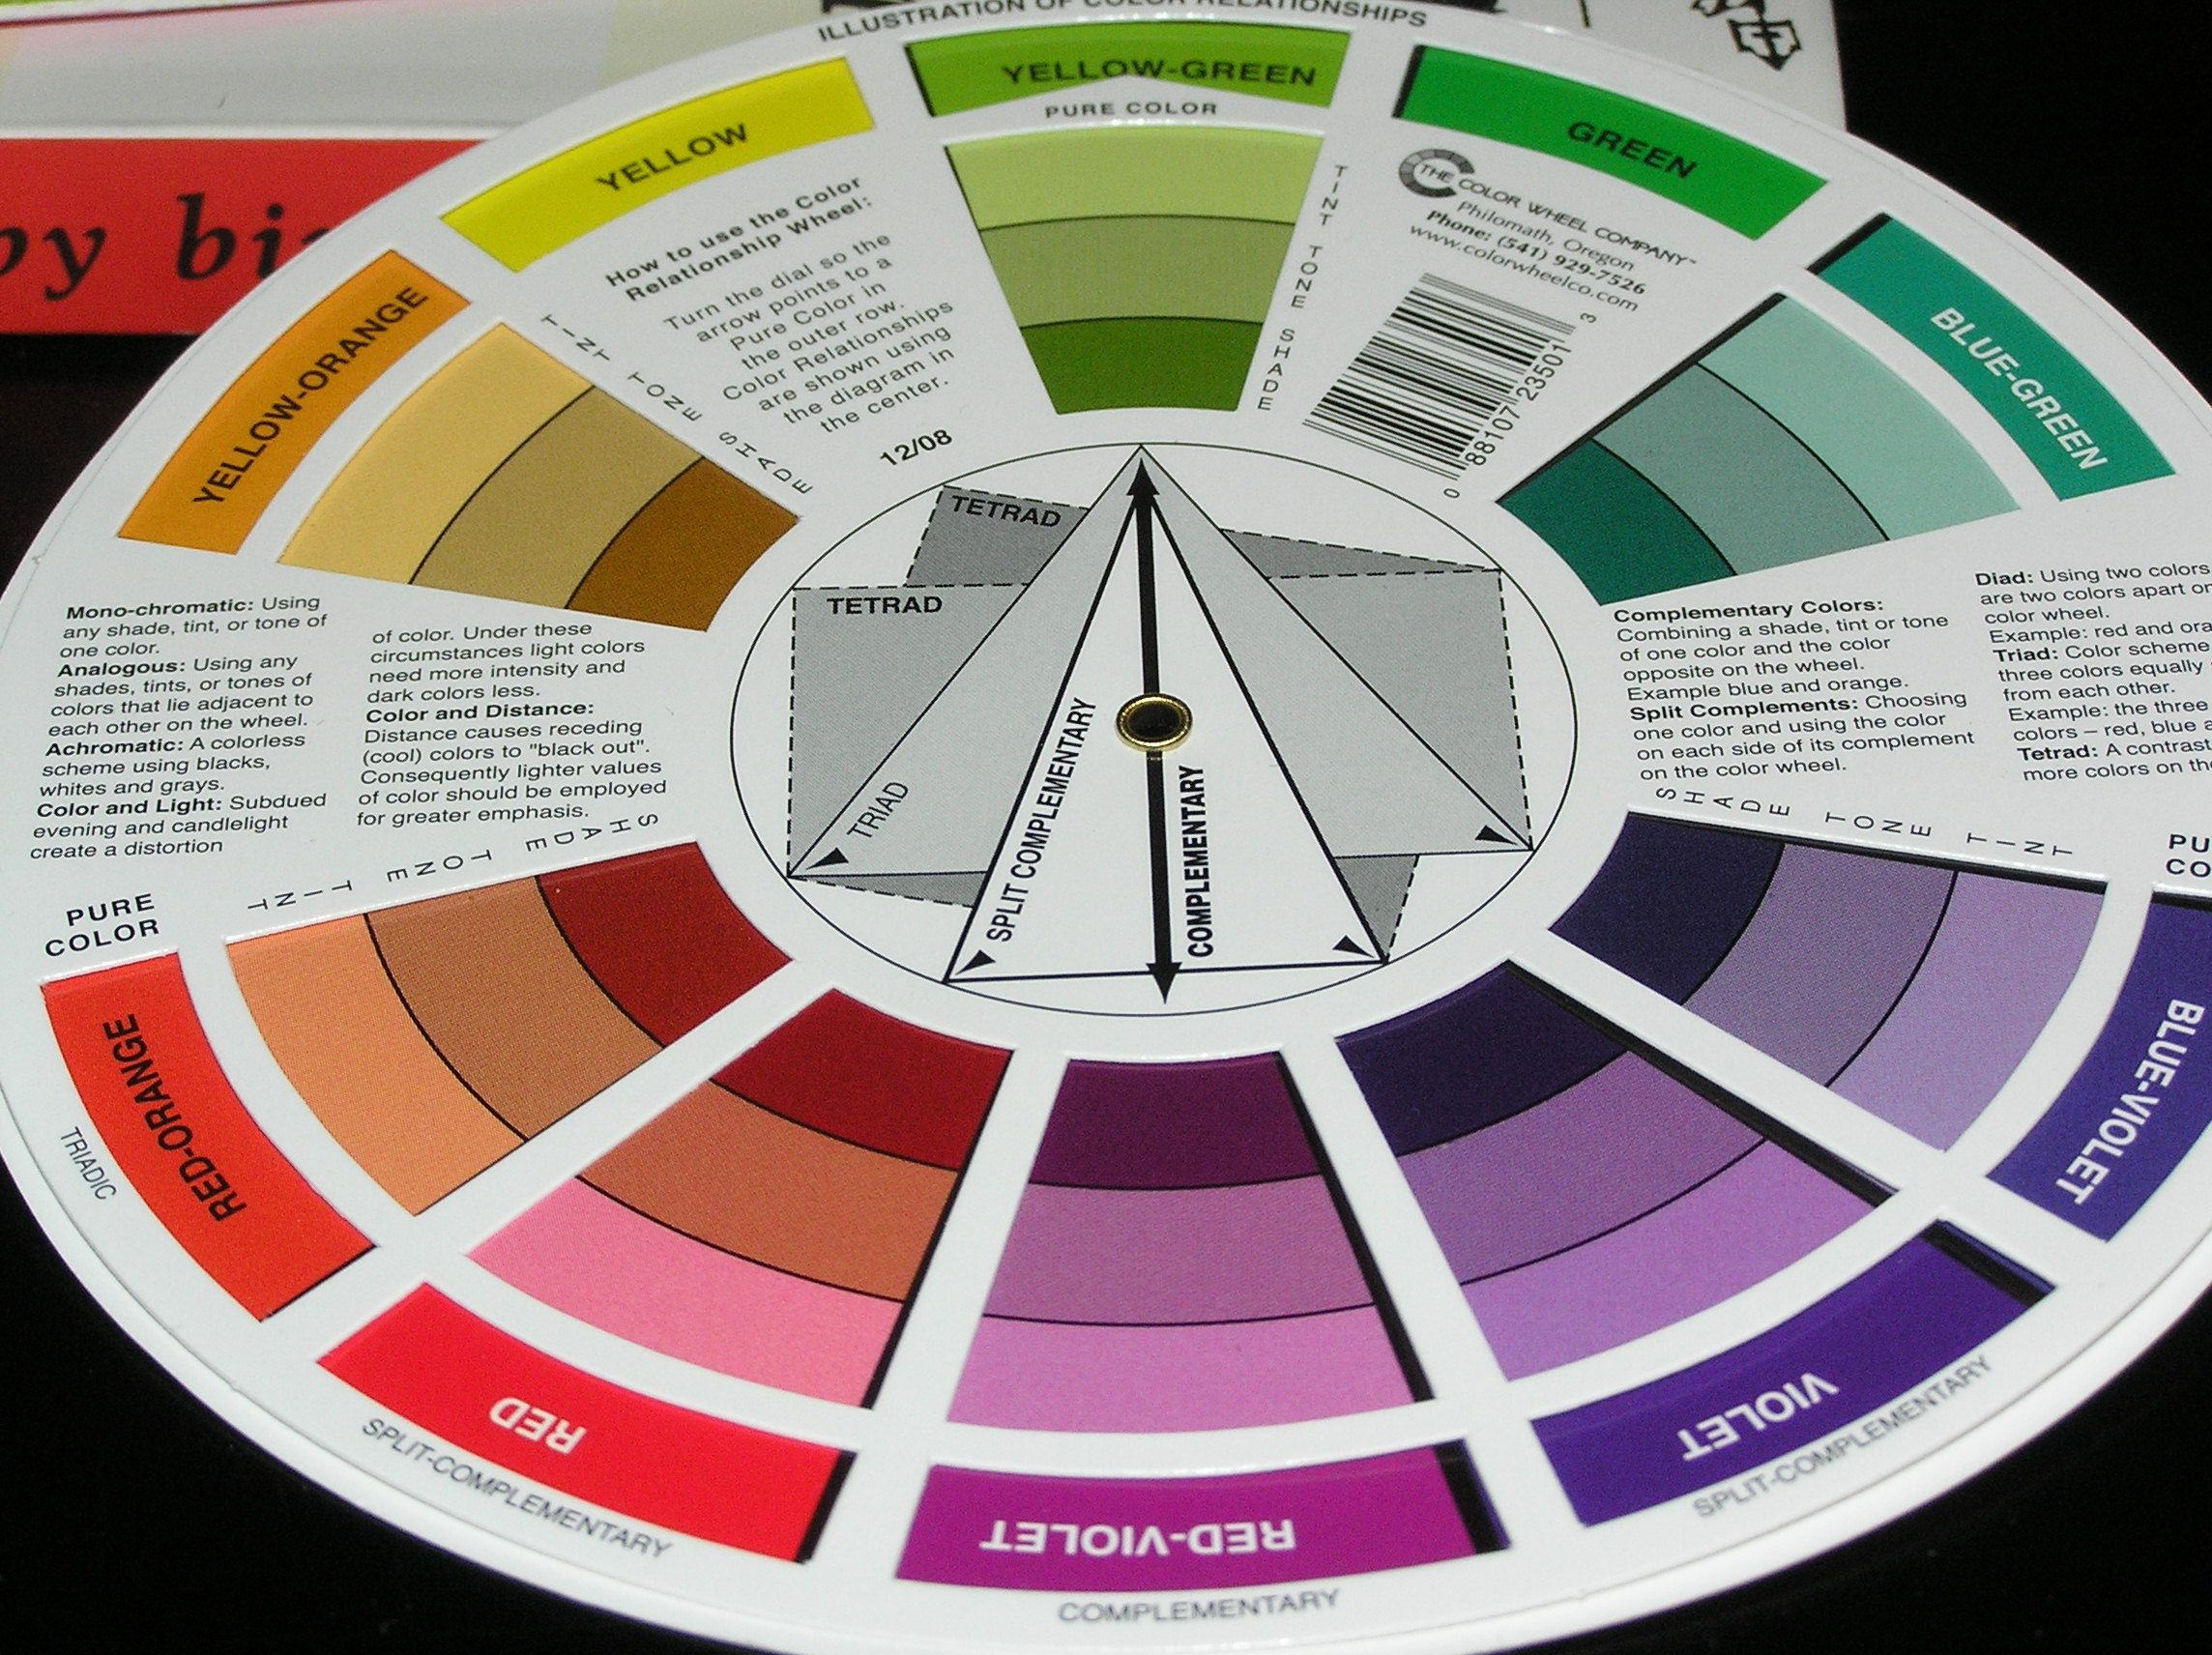 Color Wheel Scheme 34304 Hd Wallpapers Res 0x0 Color Scheme